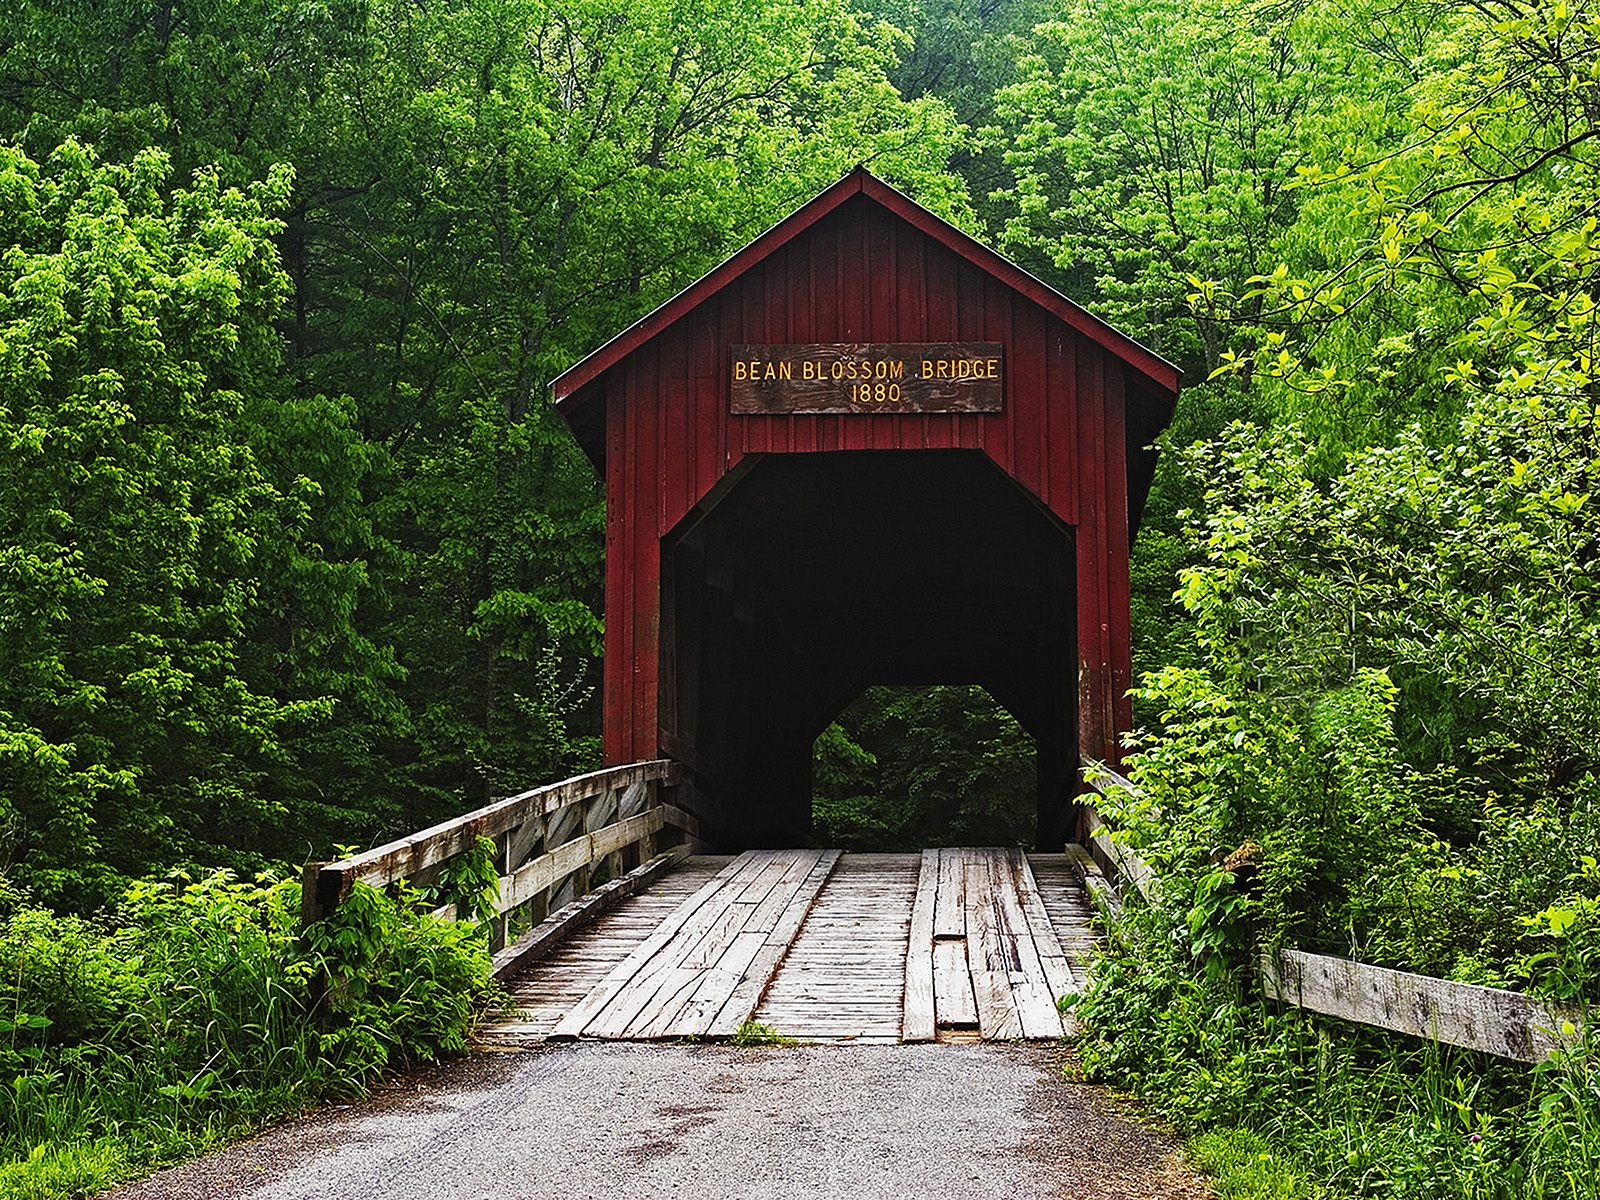 Covered Bridge, Bean Blossom, Indiana